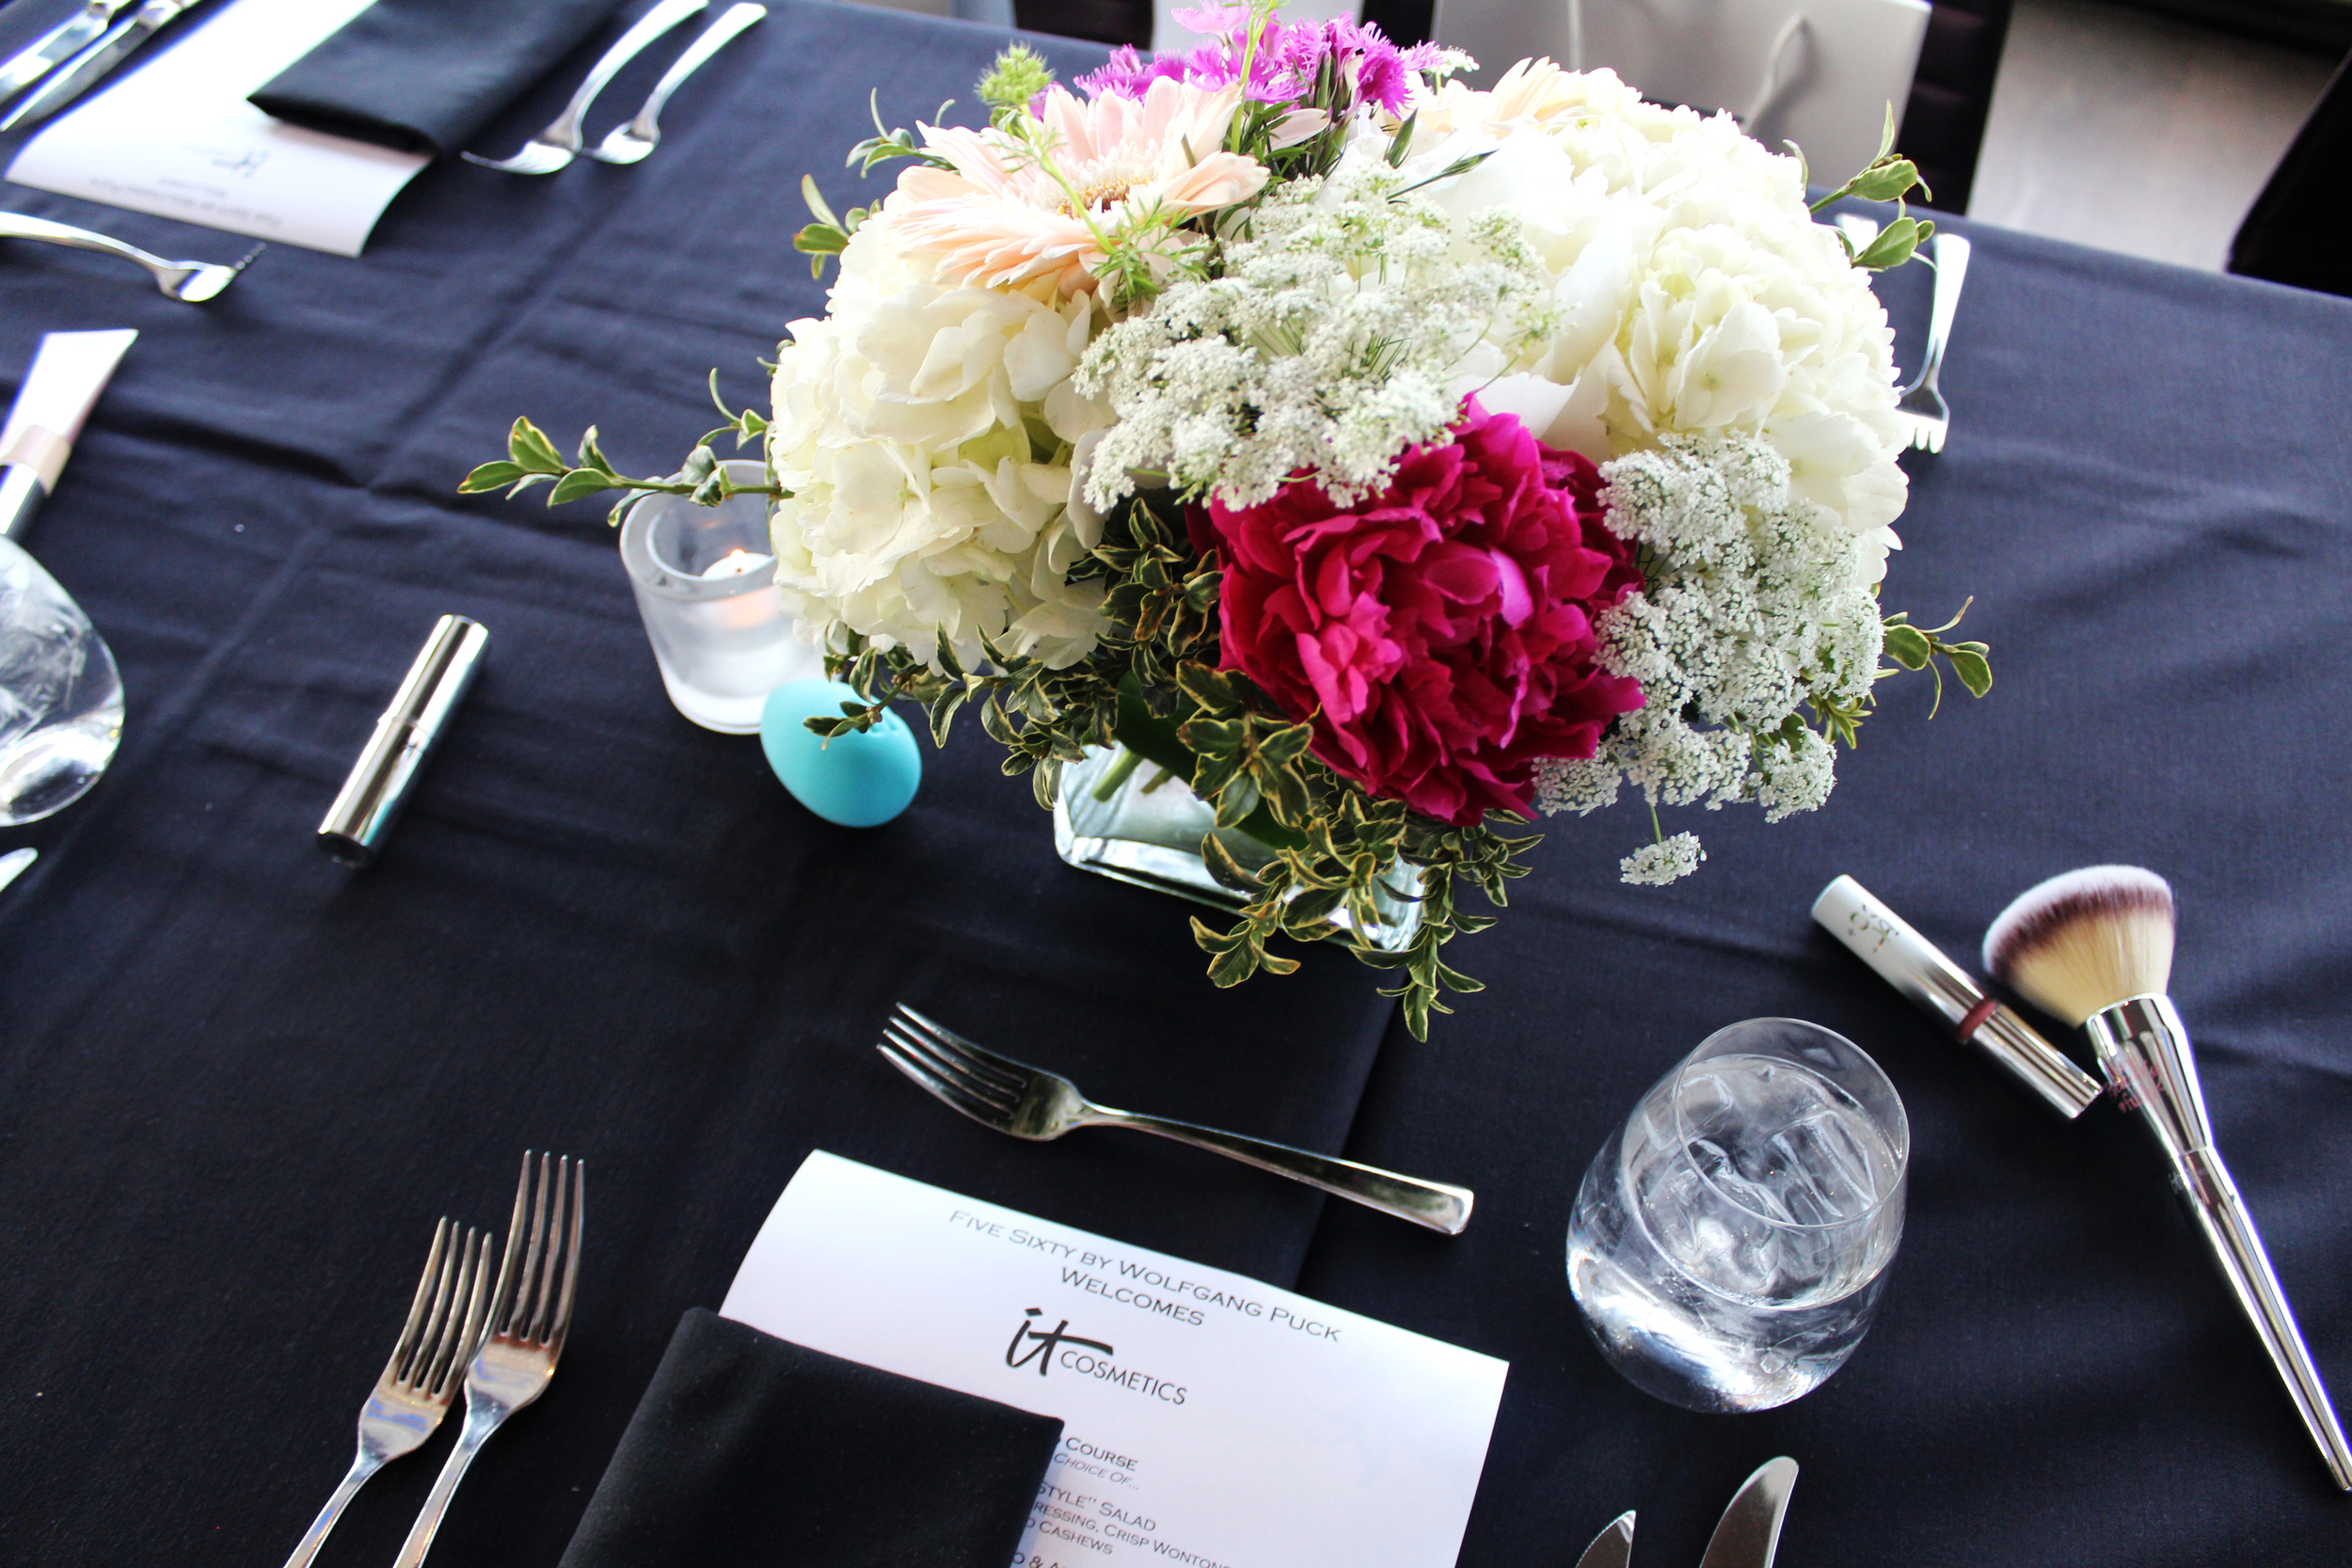 Loved the IT Cosmetics as table décor!